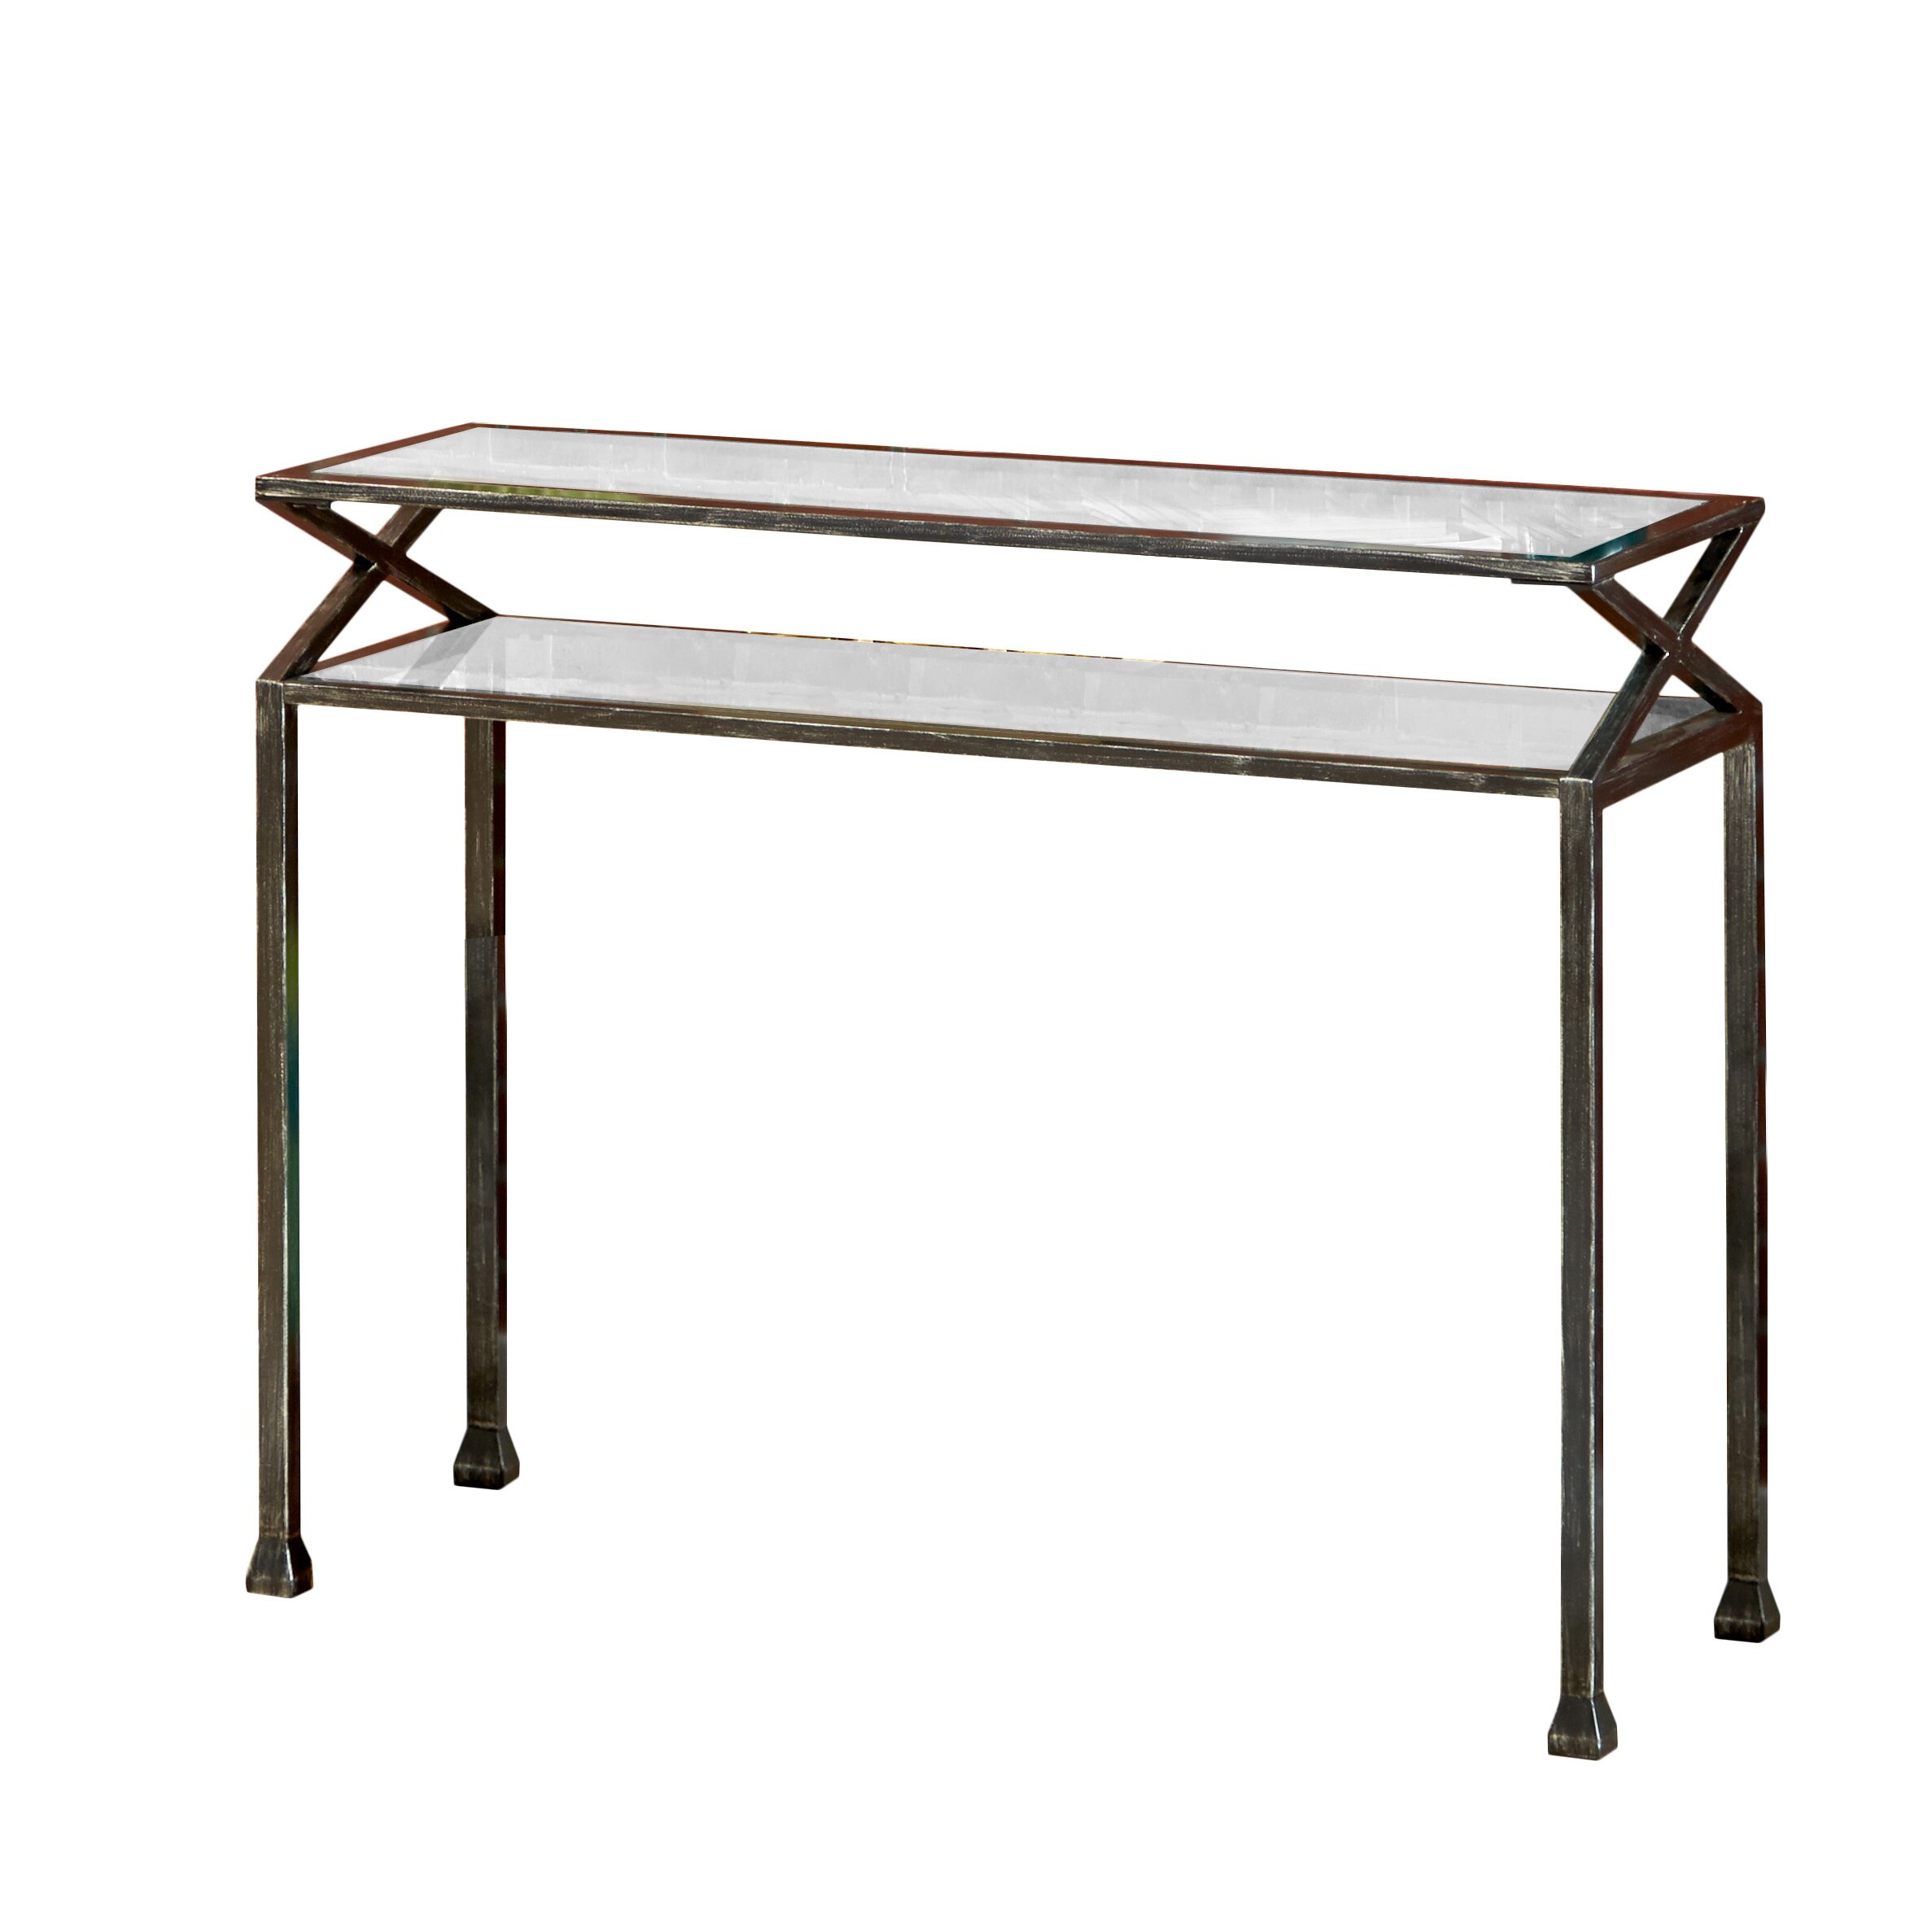 Zipcode design rosetta metal console table reviews Metal console table